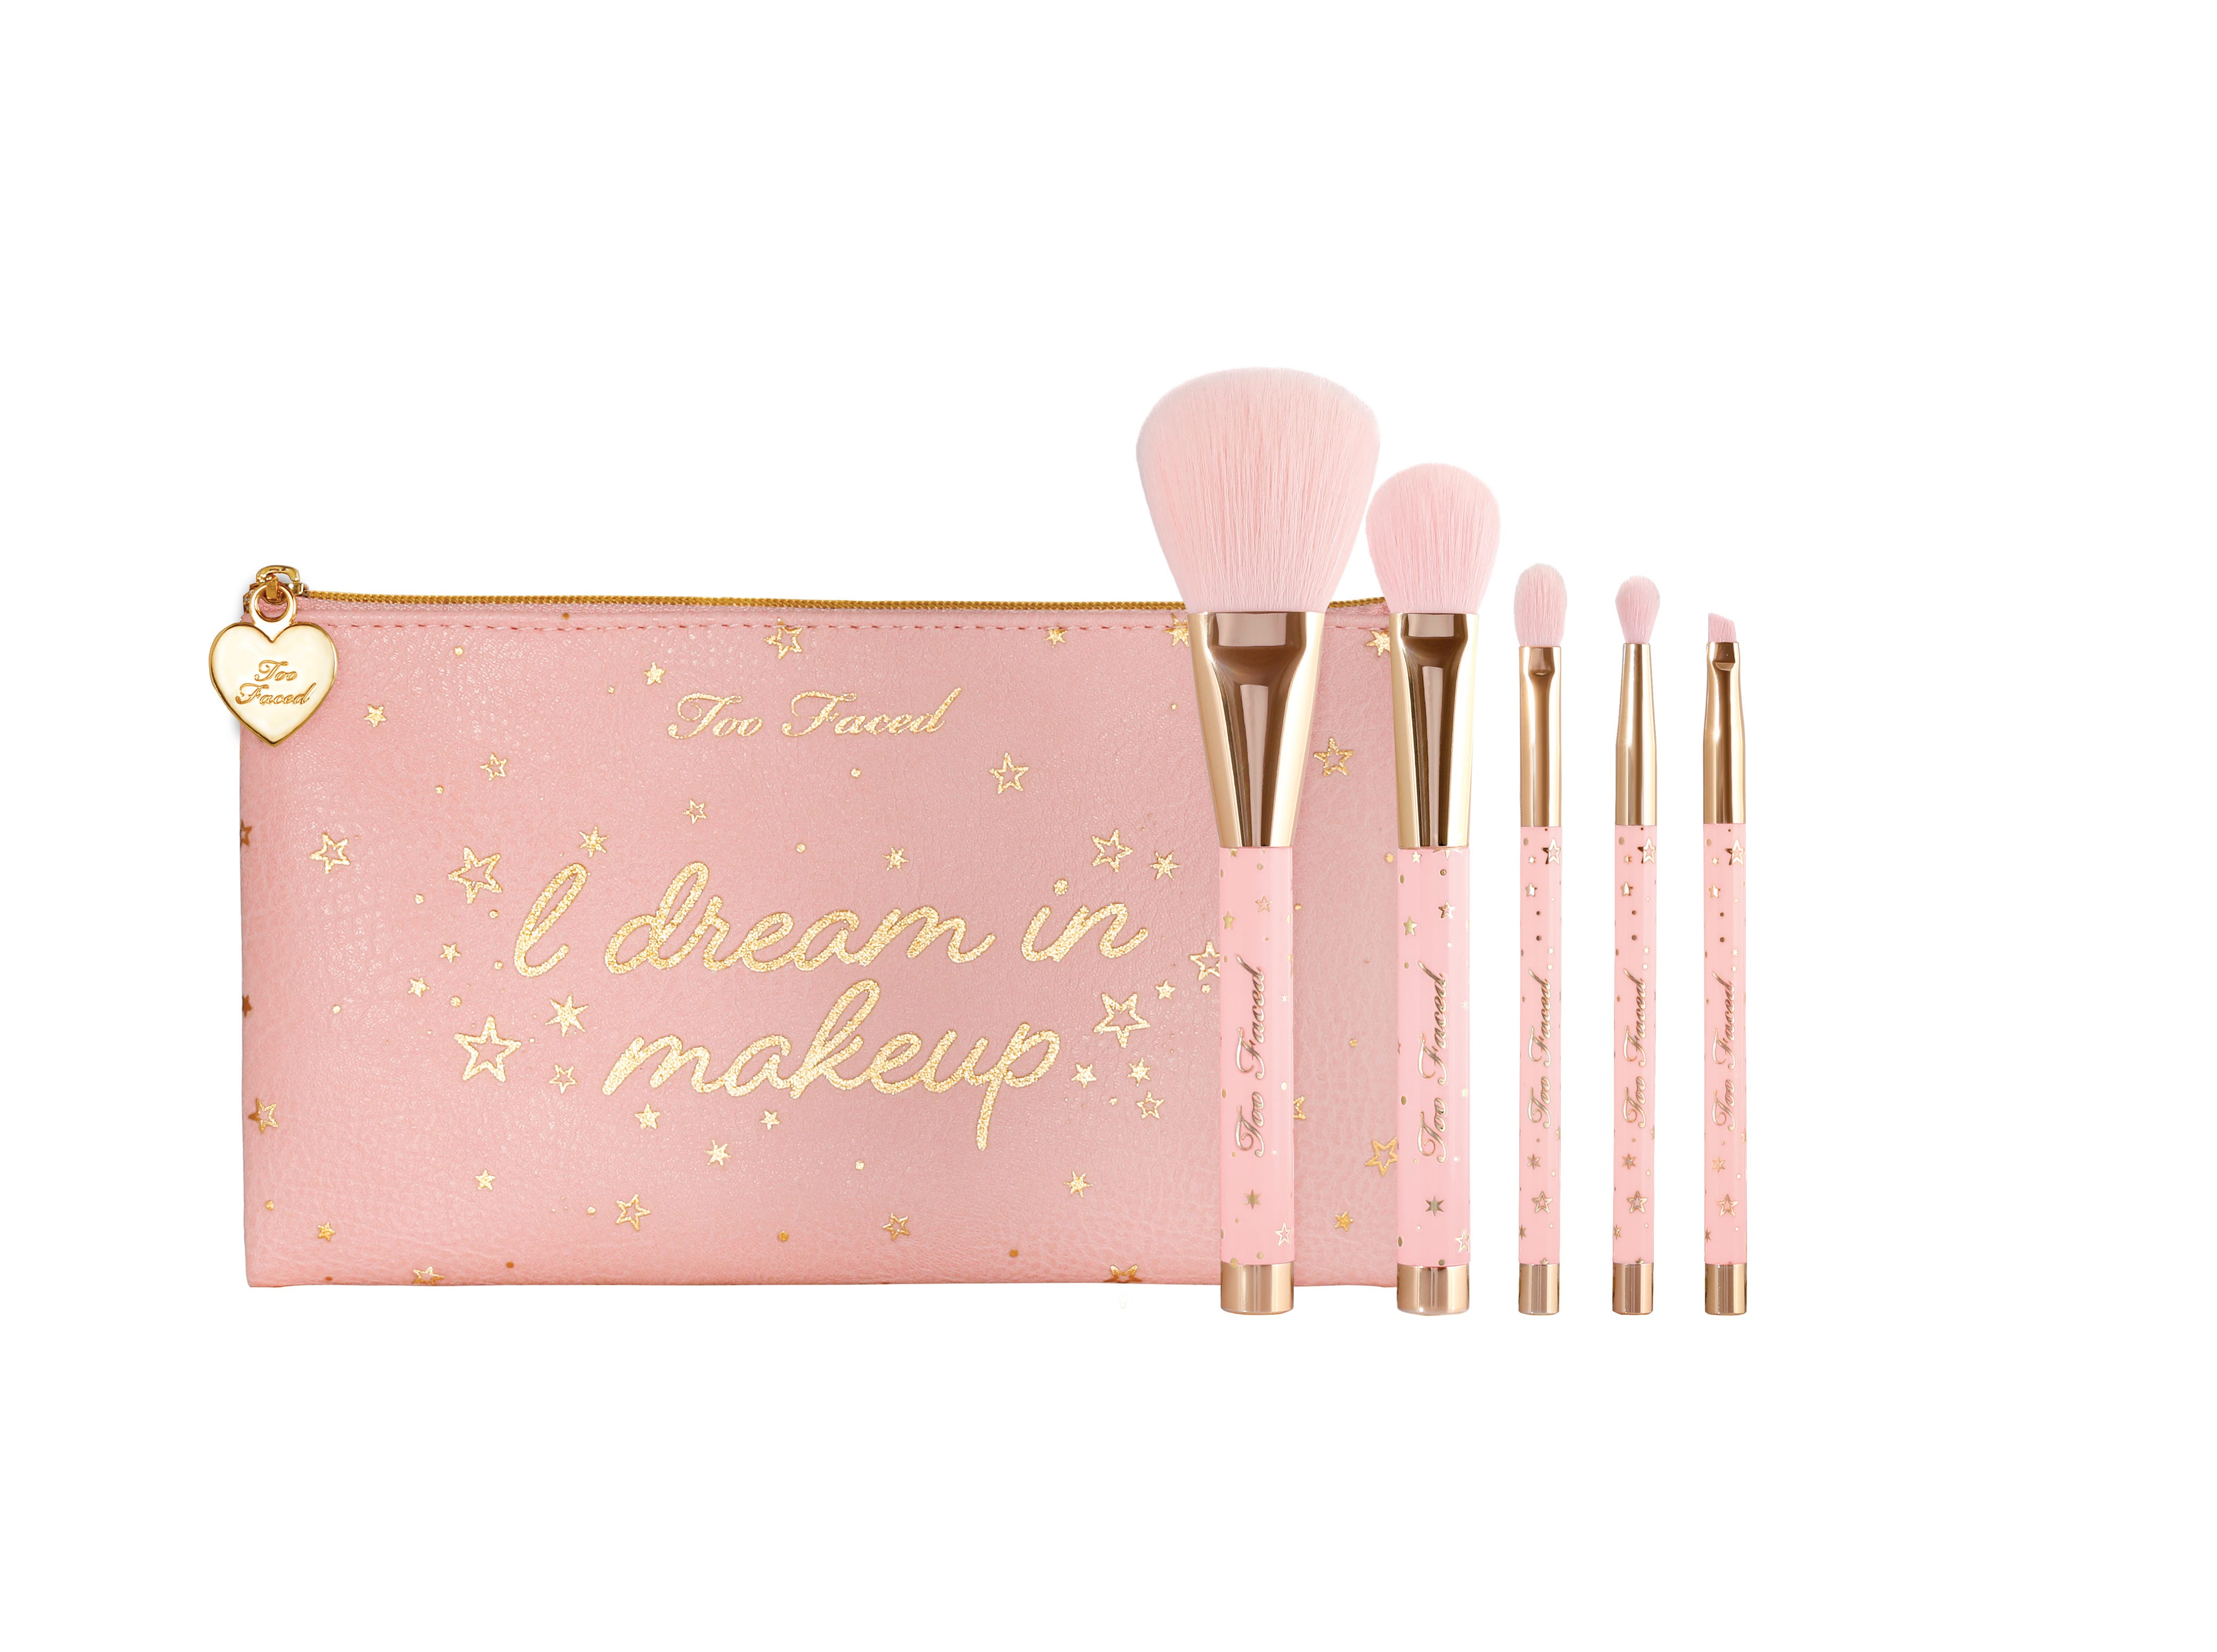 Too Faced New Holiday Christmas 2018 Makeup Collection Crazy 8 Set Make Up Brush 12 Pieces